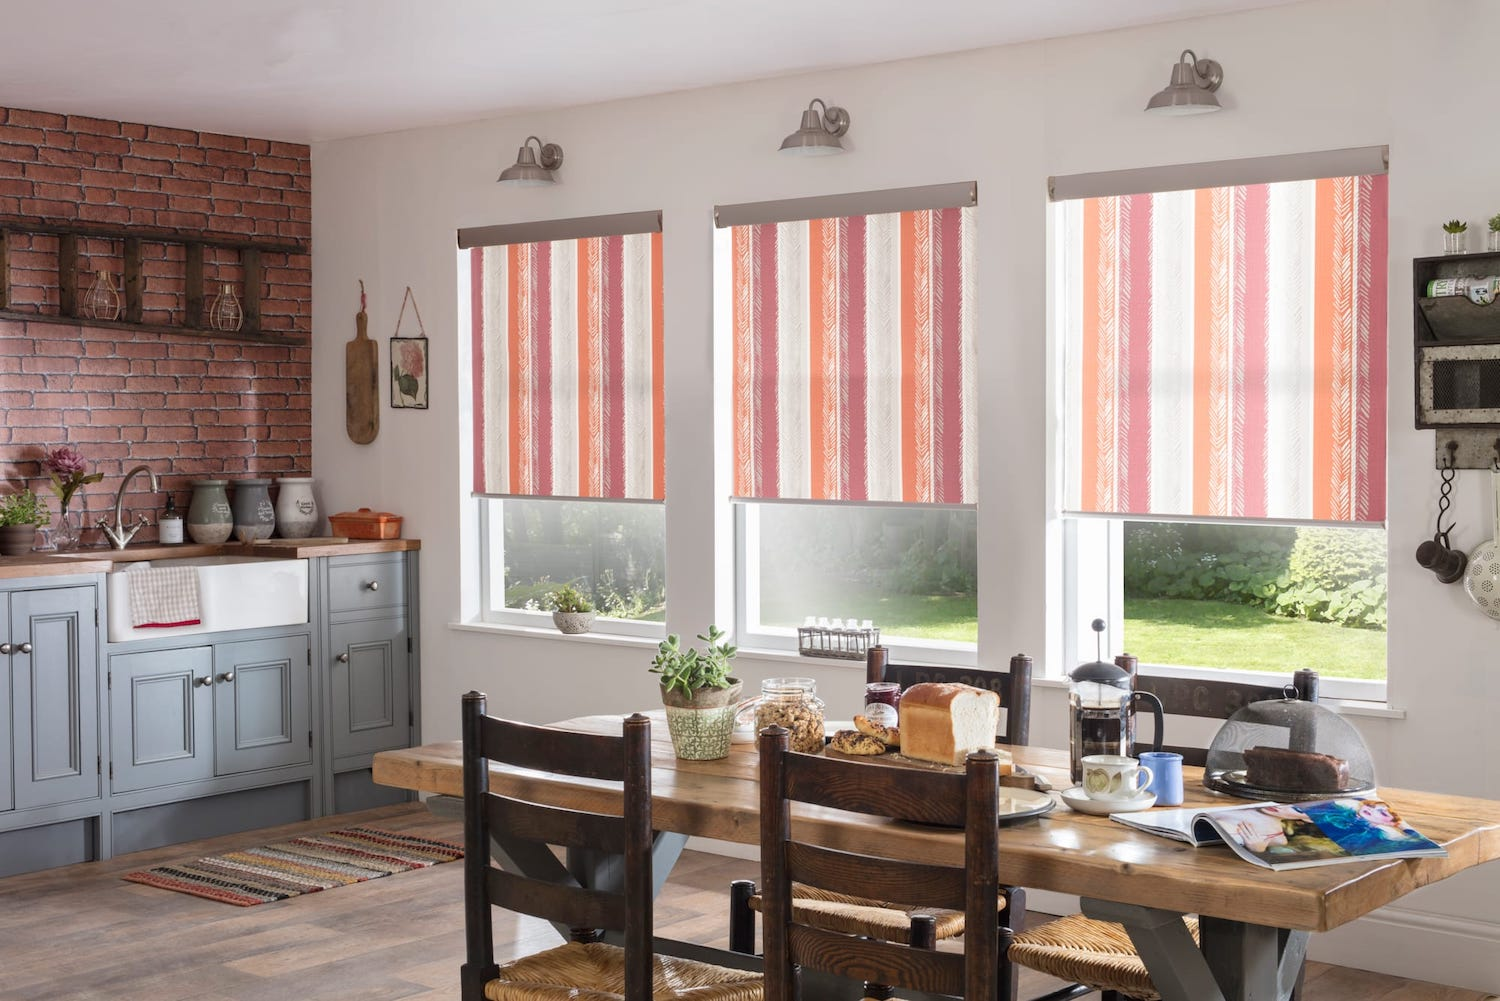 Indiana orange rustic kitchen roller blind